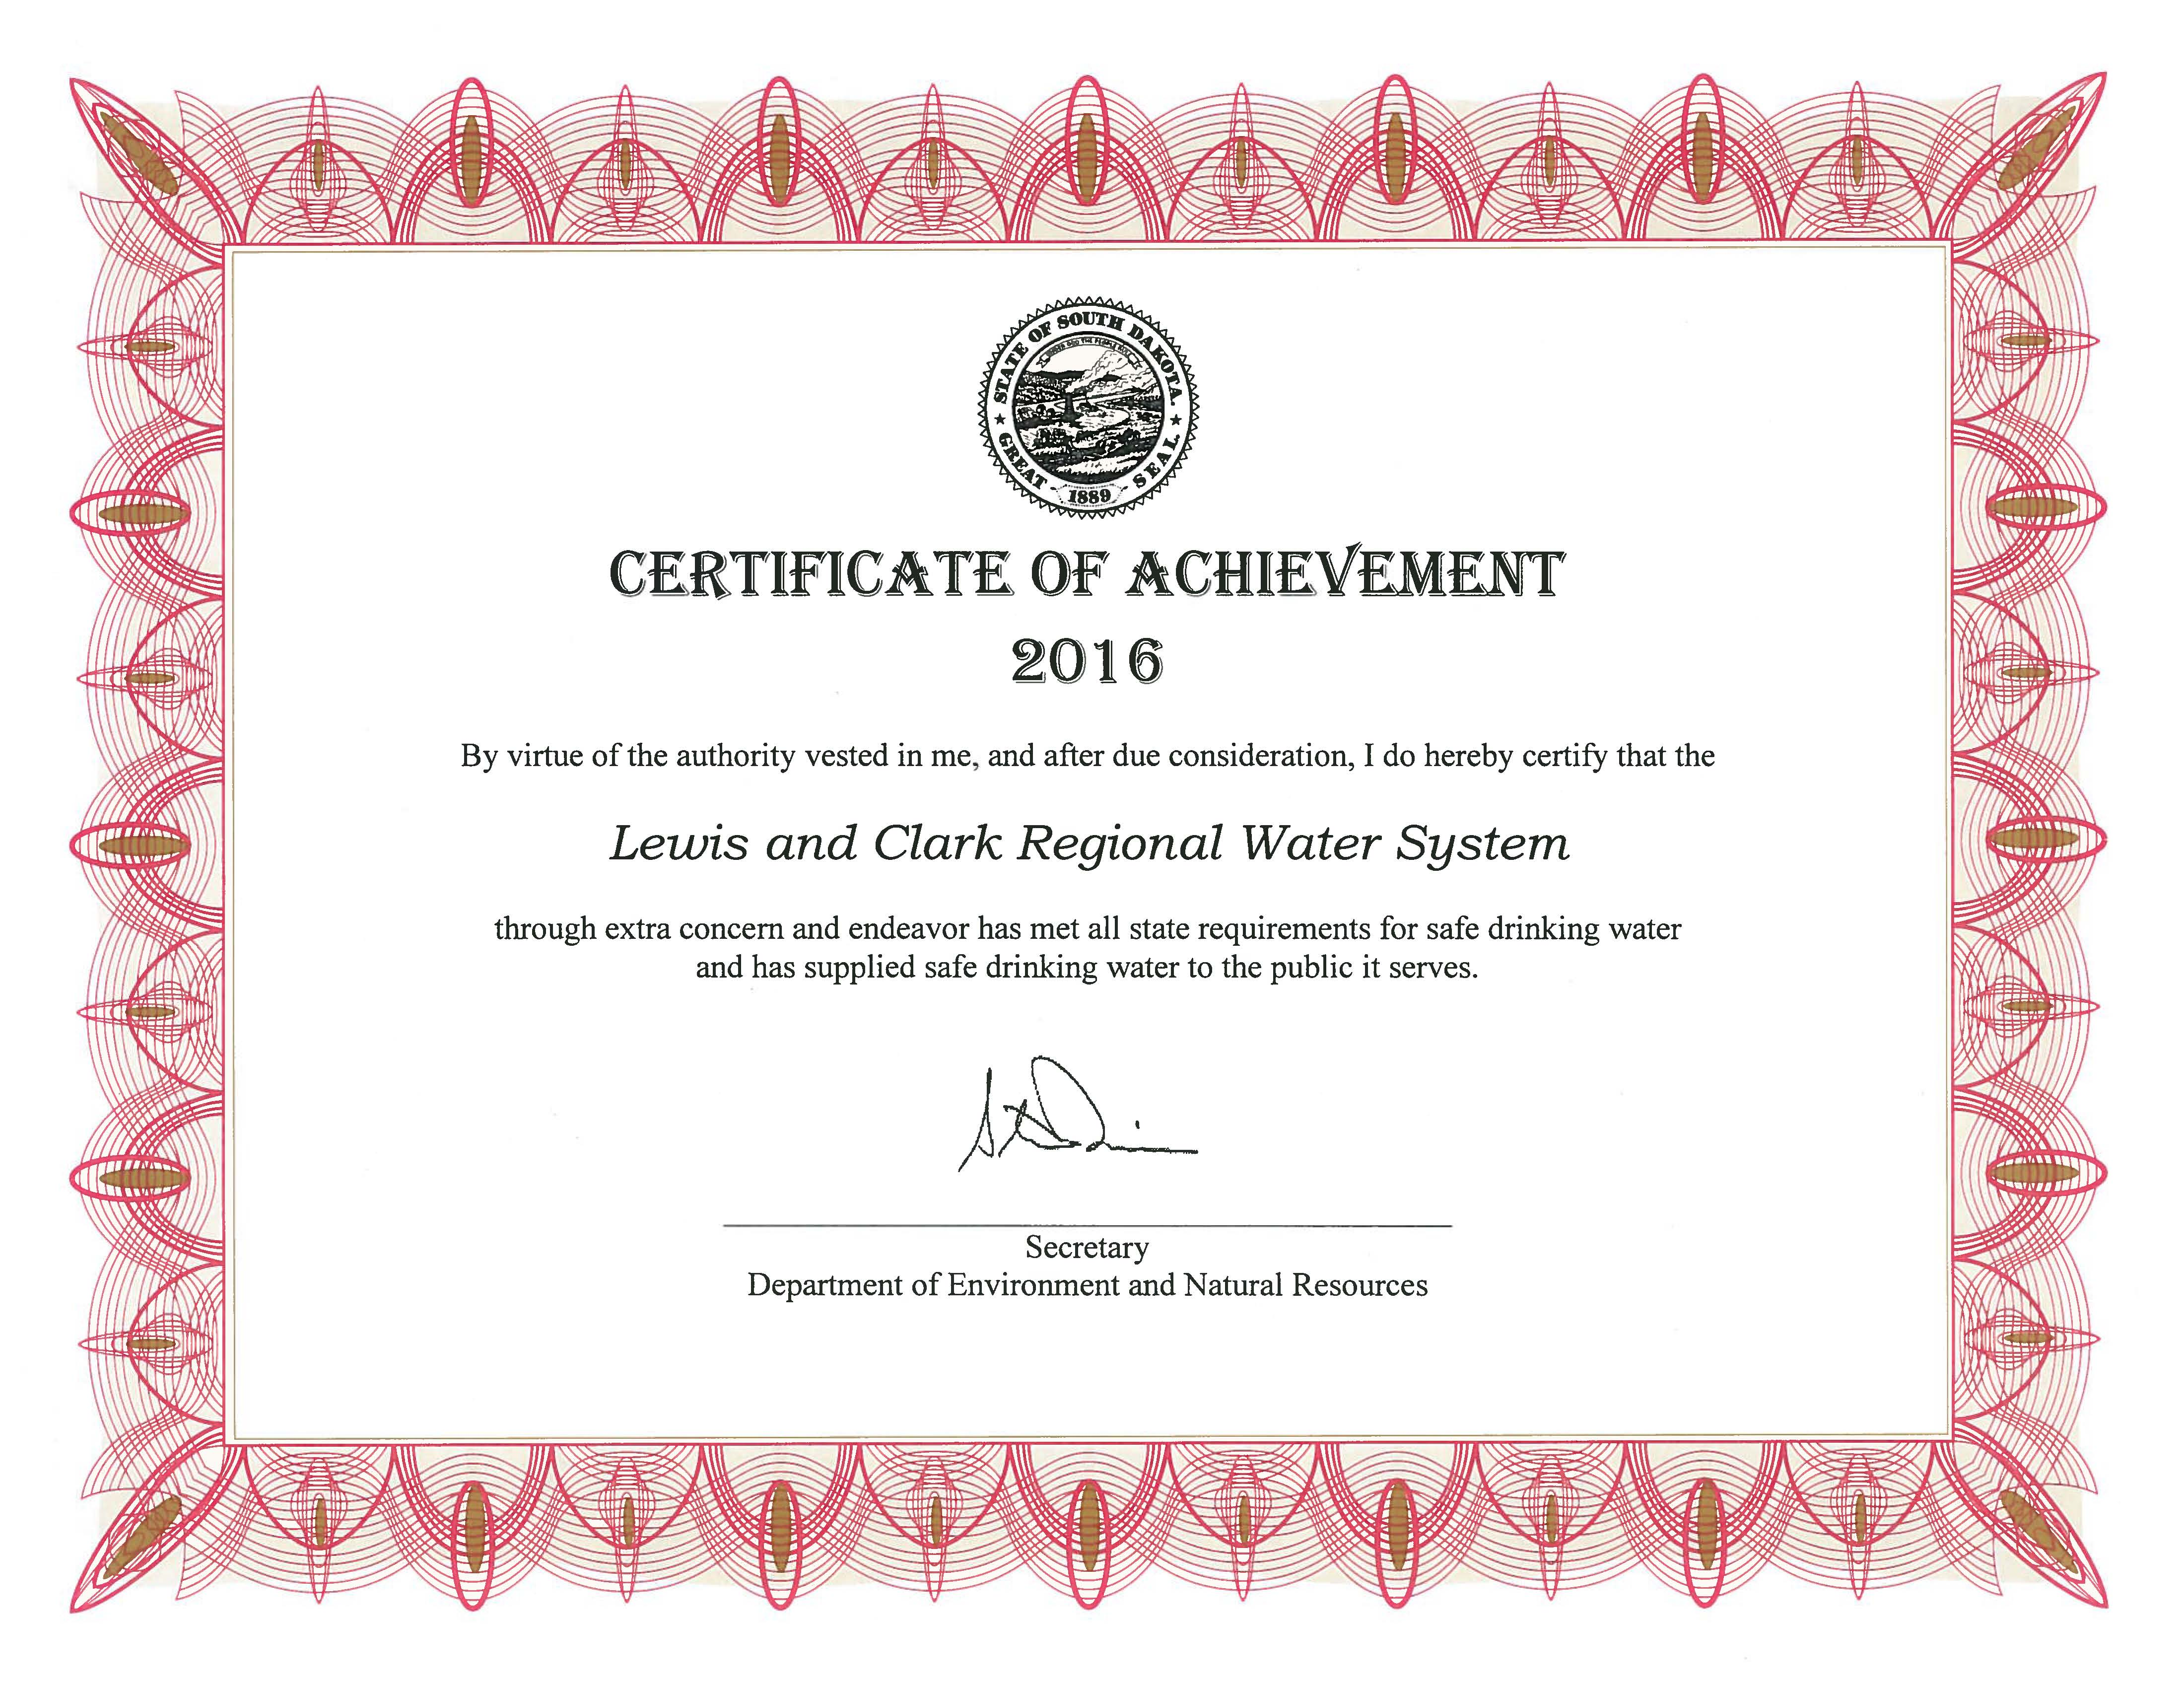 Certificate of achievement received from sd denr lewis and clark lewis clark has received the south dakota department of environment and natural resources 2016 drinking water certification of achievement award 1betcityfo Image collections